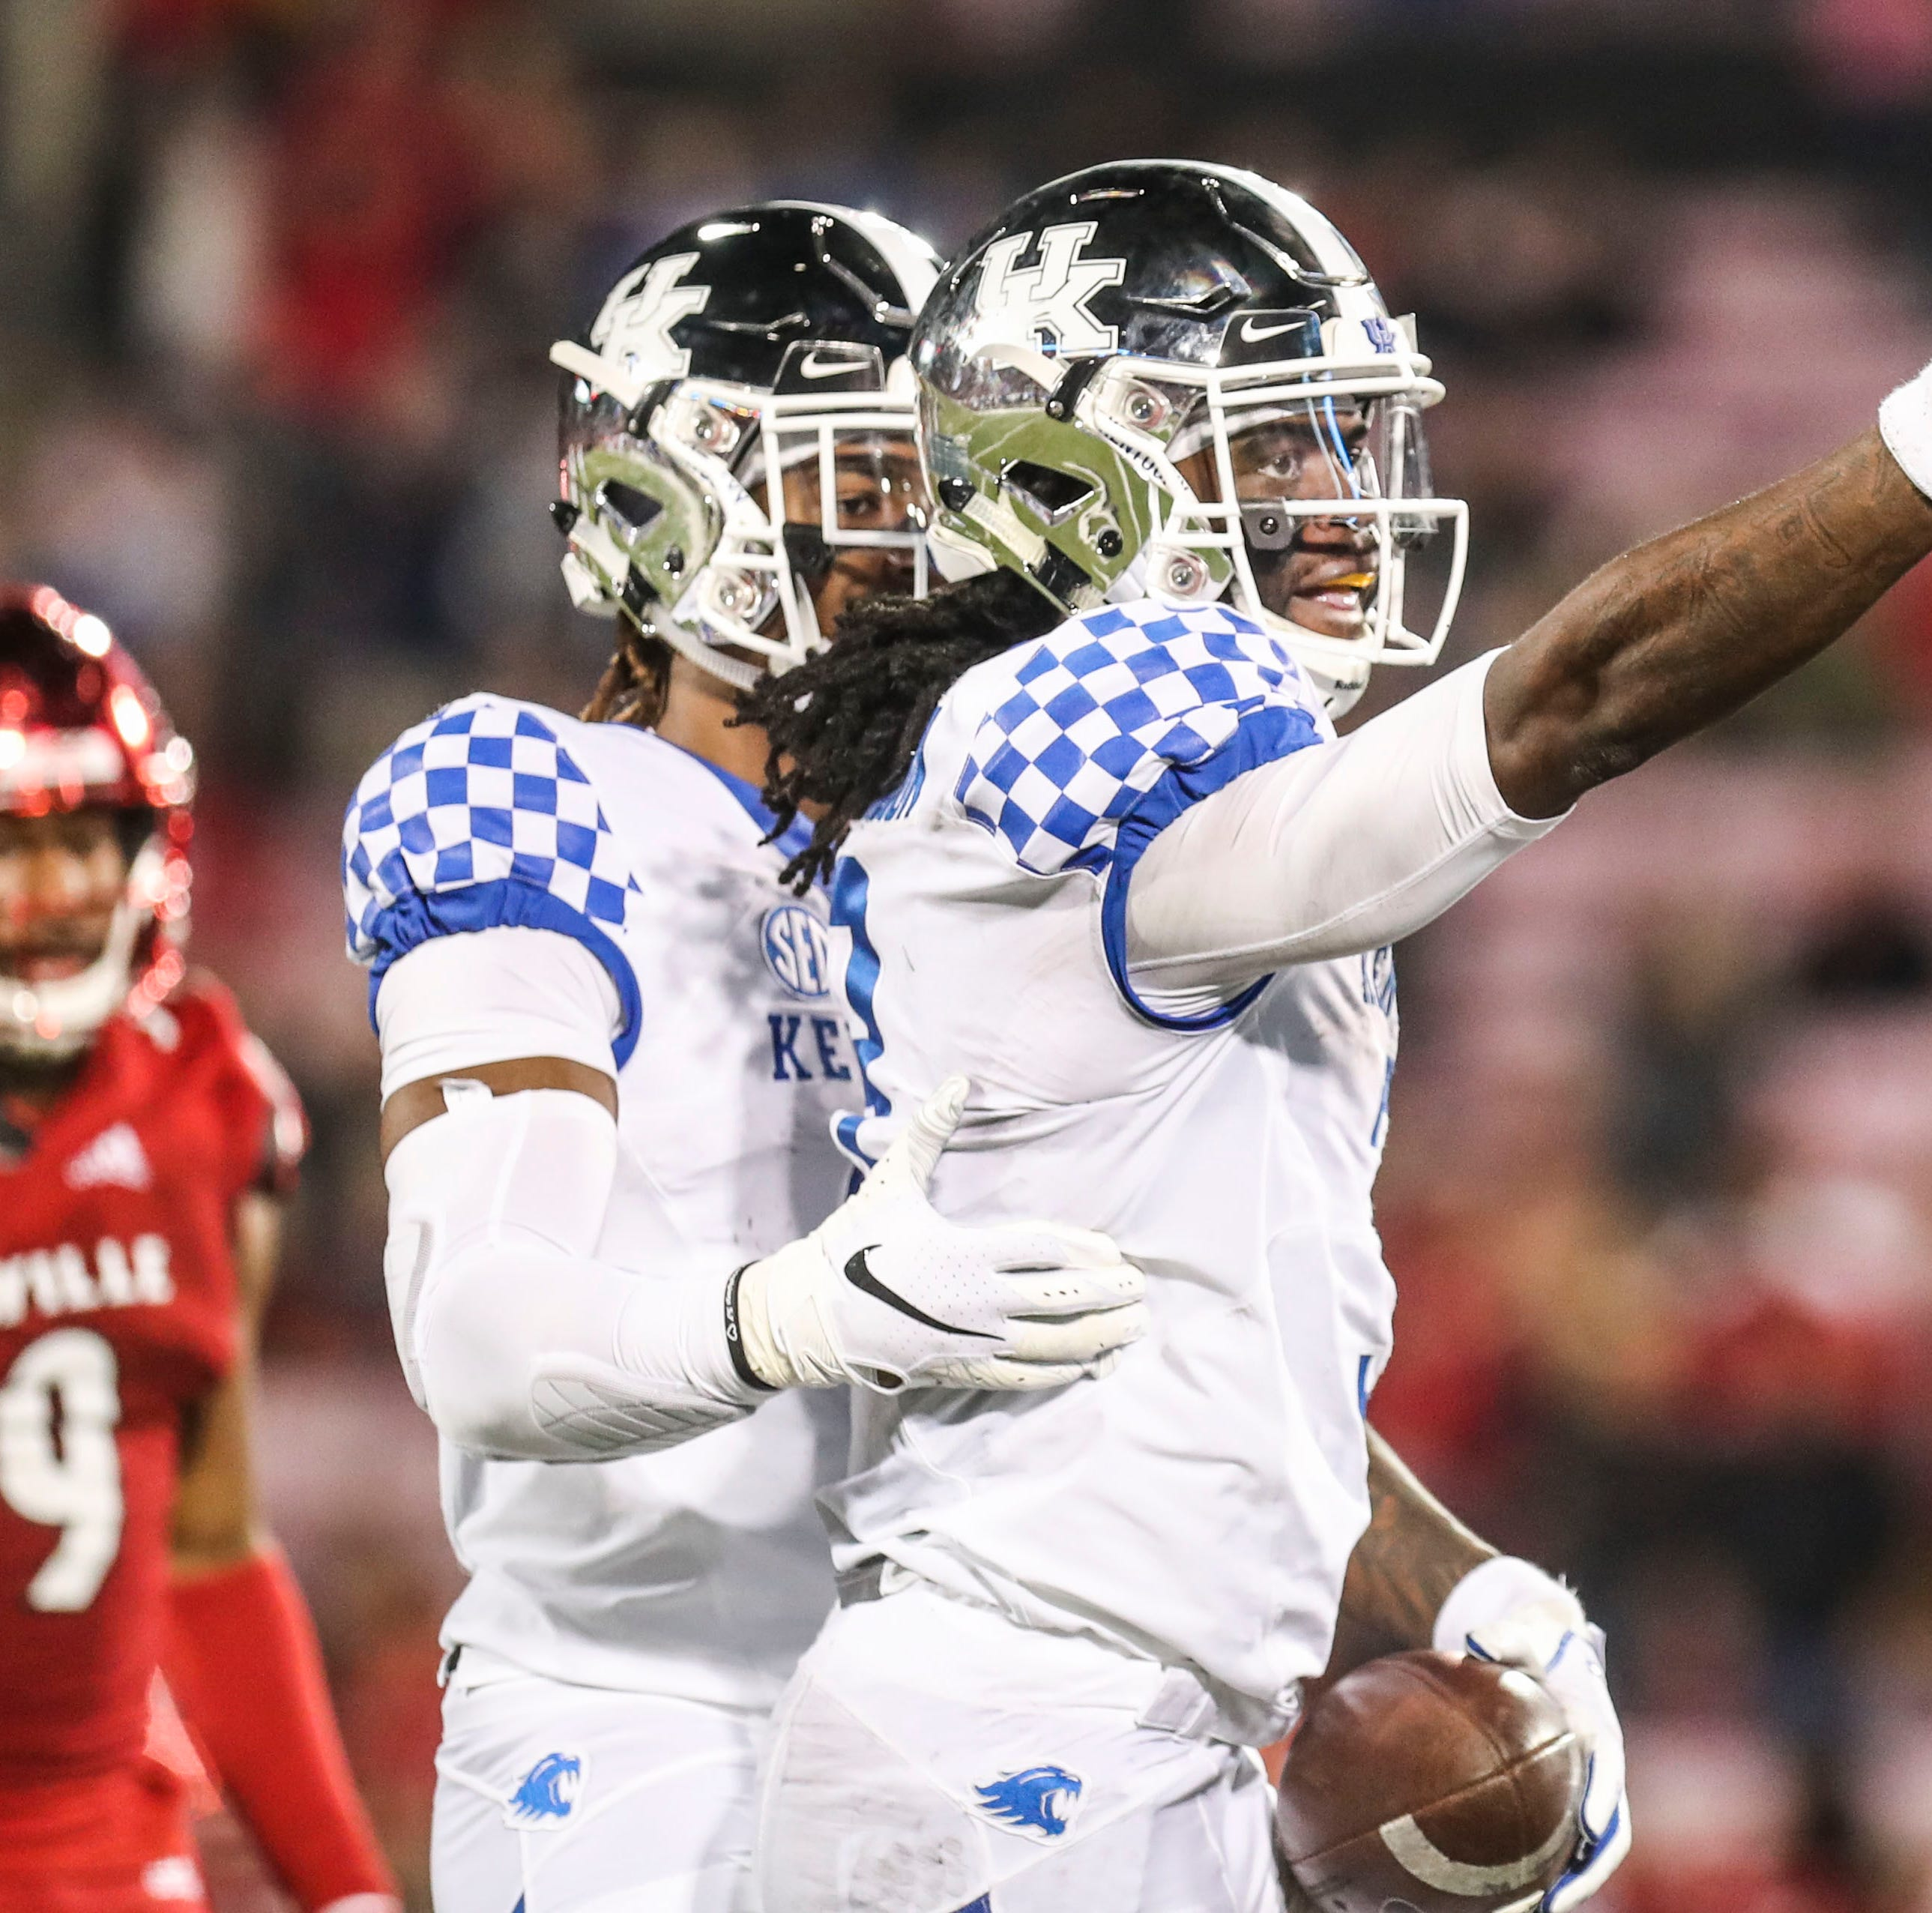 What you need to know about Kentucky football bowl selection process